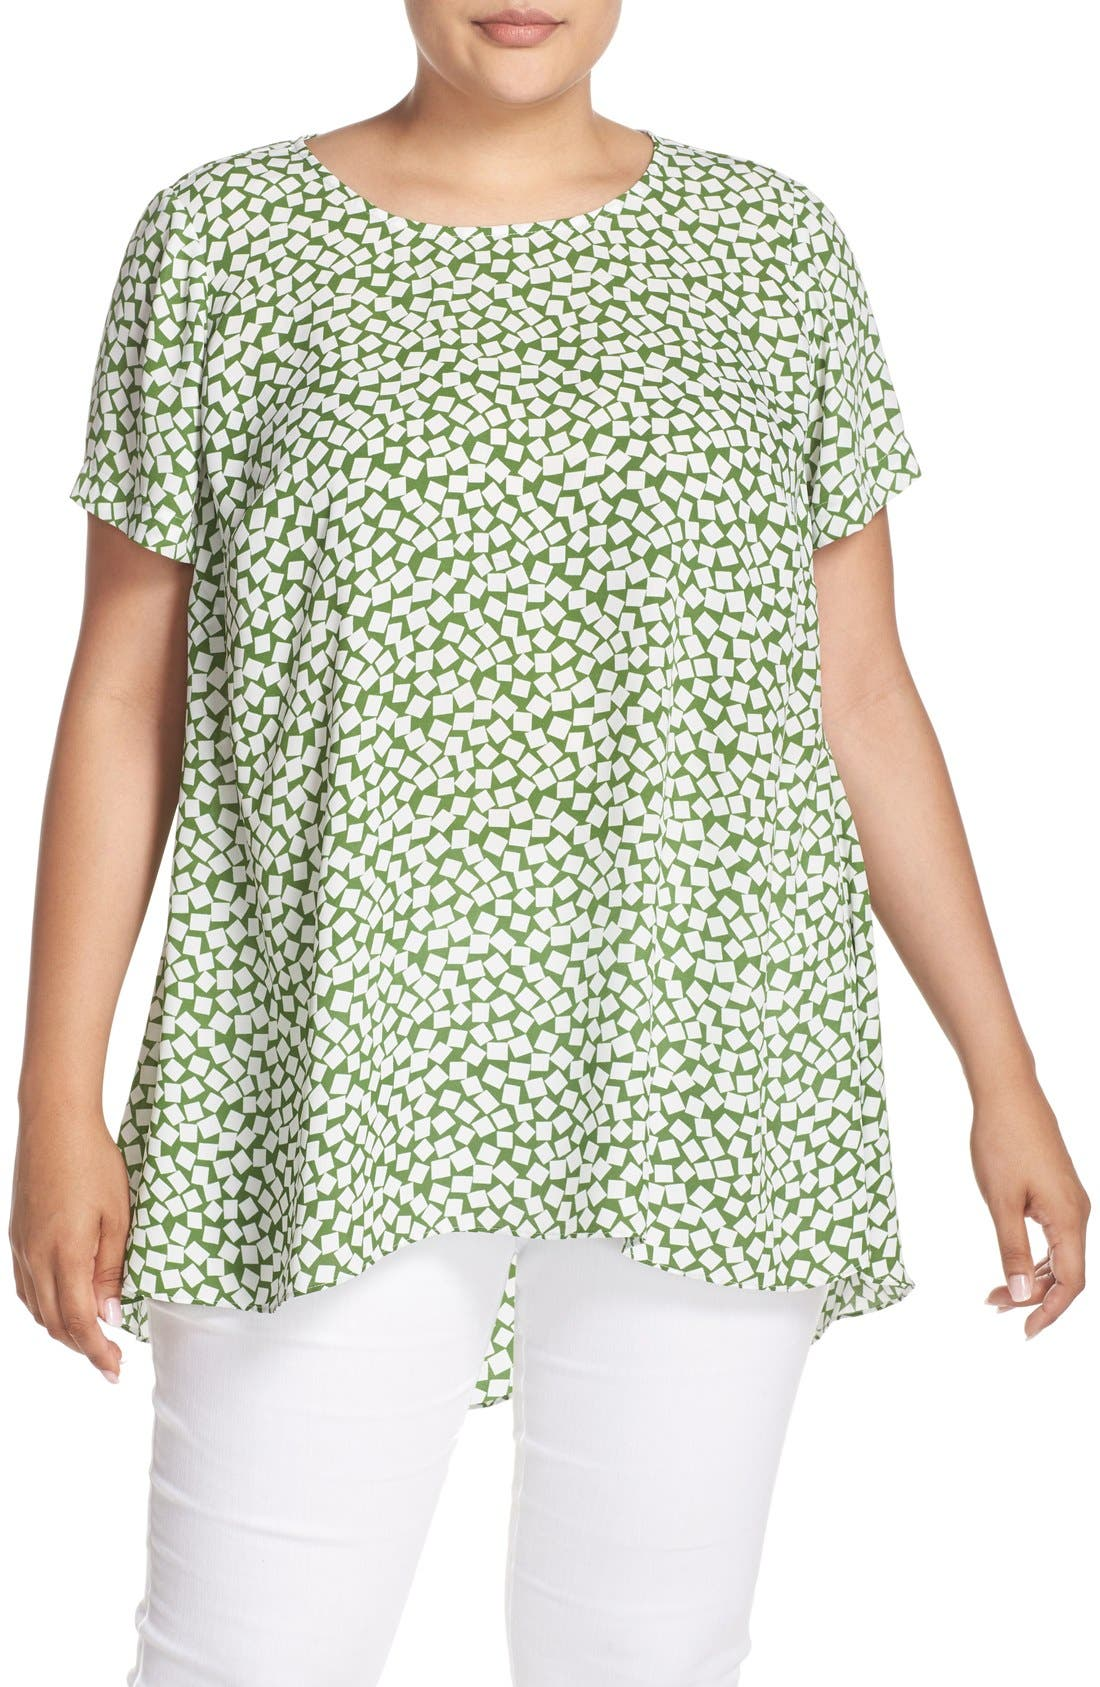 Main Image - Vince Camuto 'Falling Cubes' Print Short Sleeve High/Low Blouse (Plus Size)